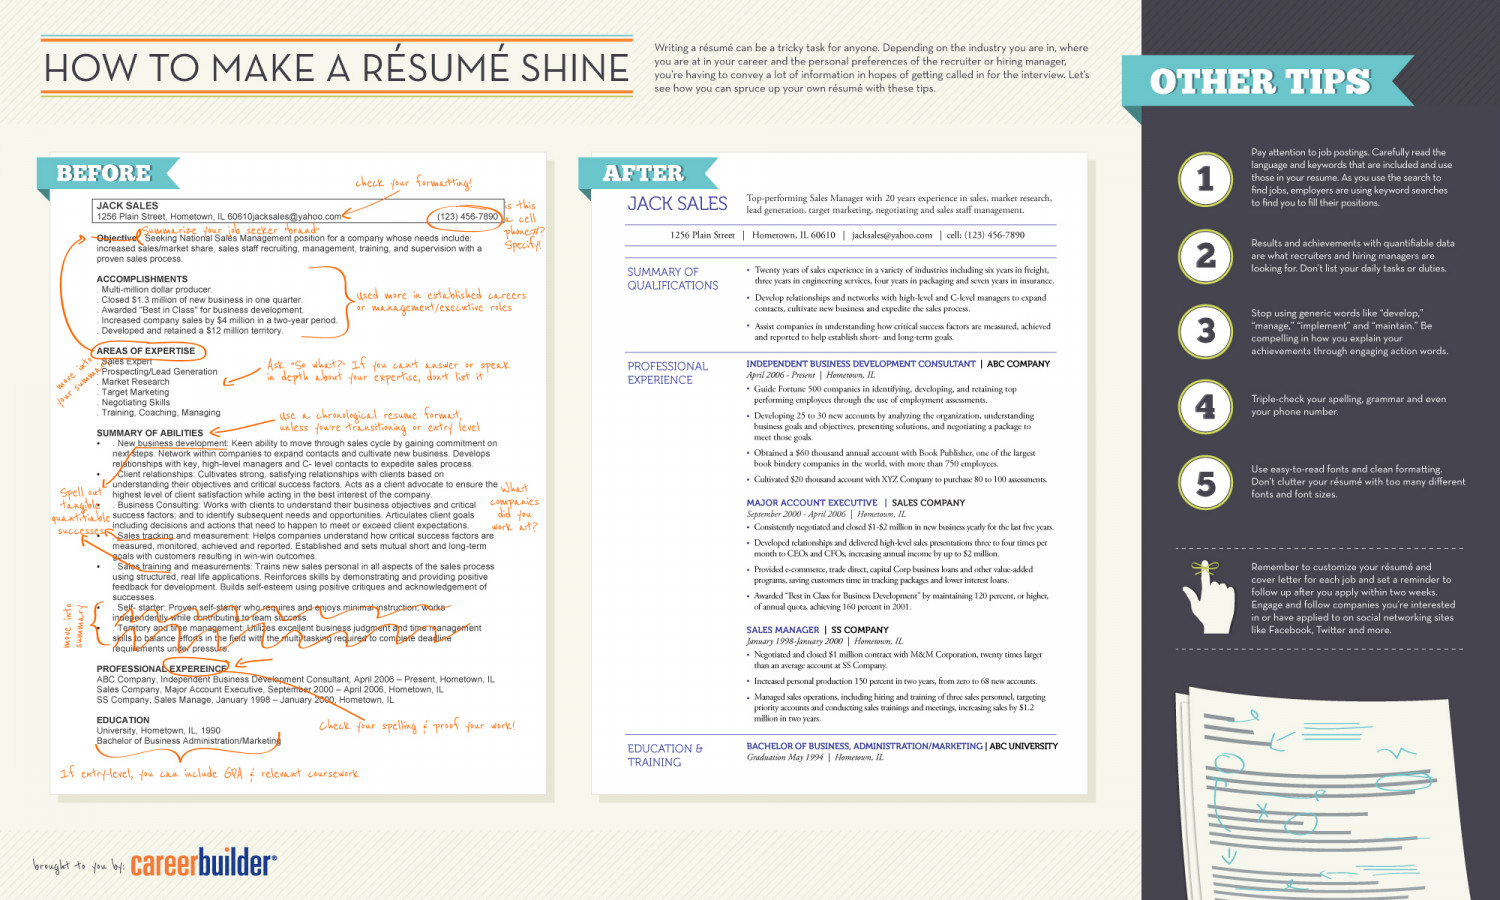 how to make a rsum shine infographic - Career Builders Resume